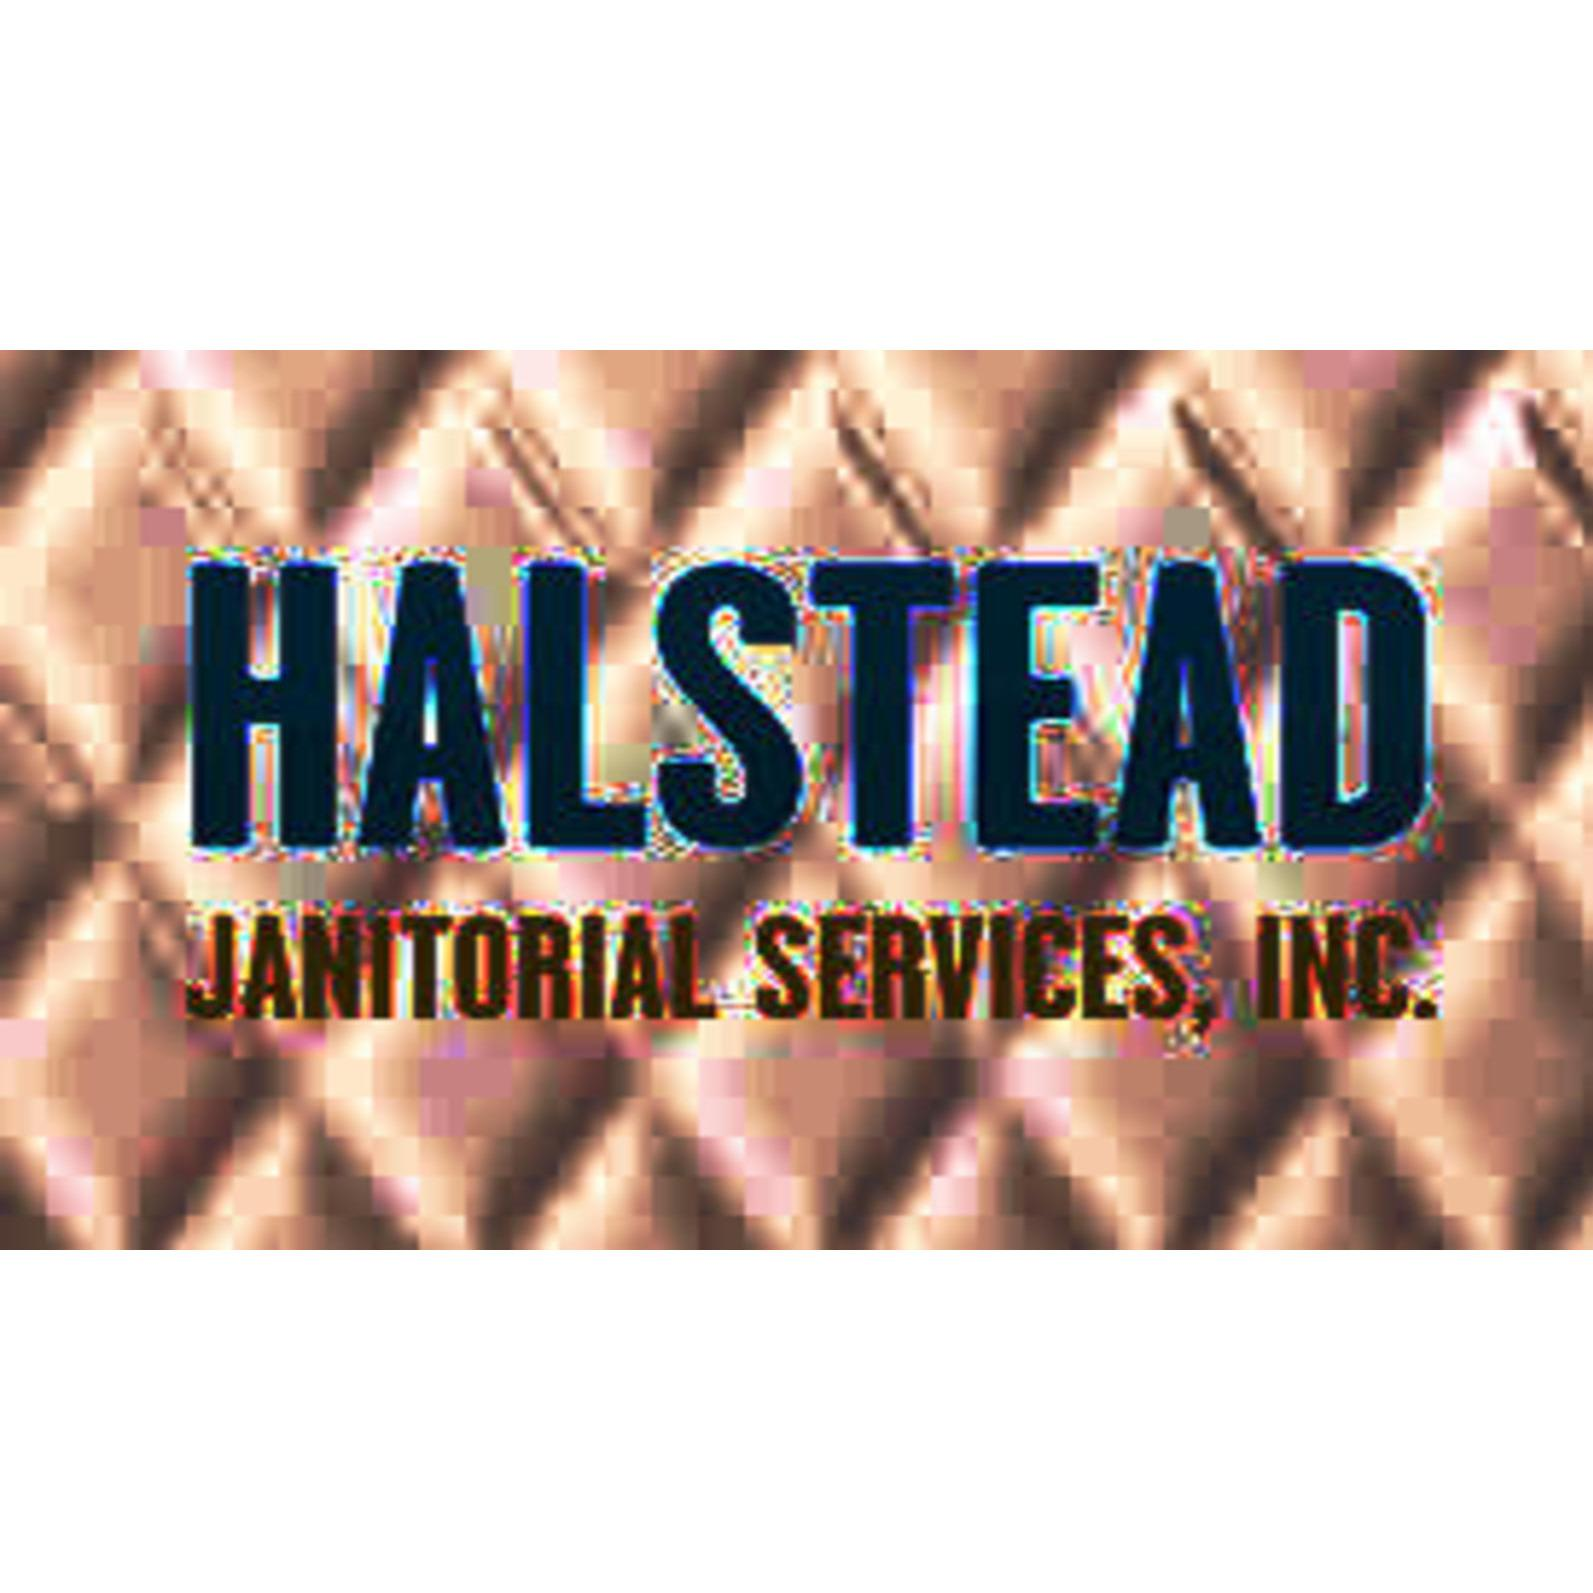 Halstead Janitorial Services